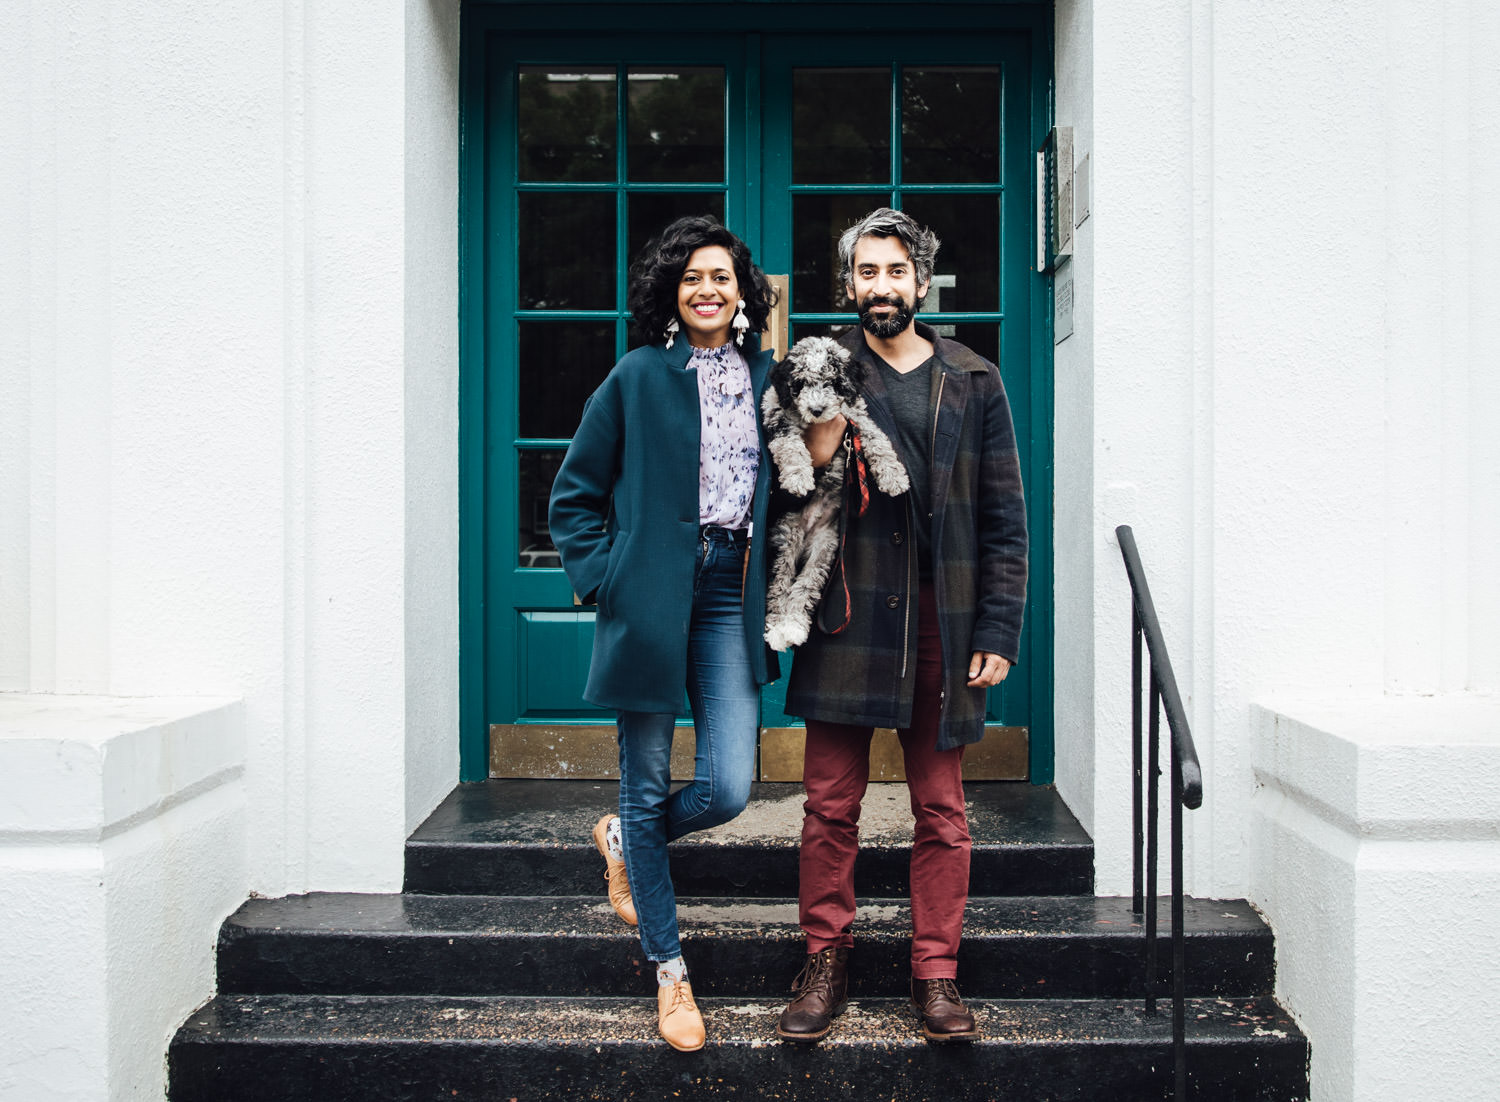 London engagement portraits | Kilburn doorstep photoshoot